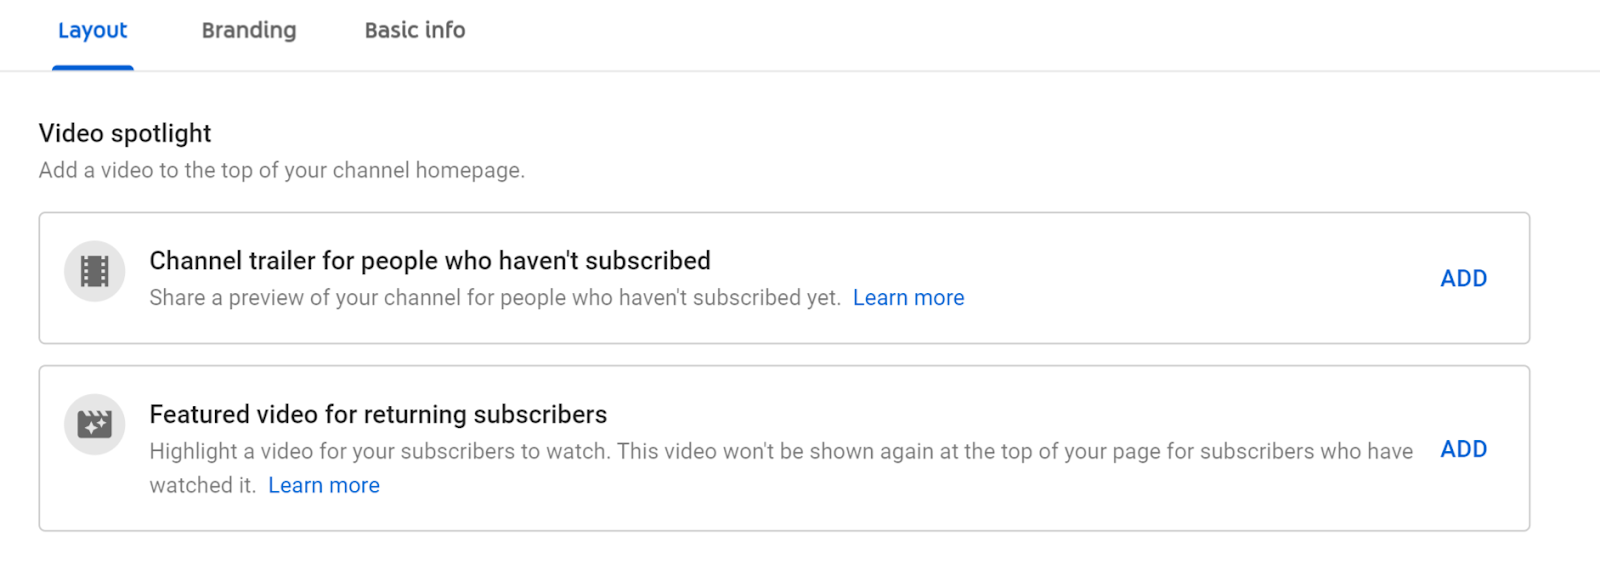 Settings to customize YouTube channel layout